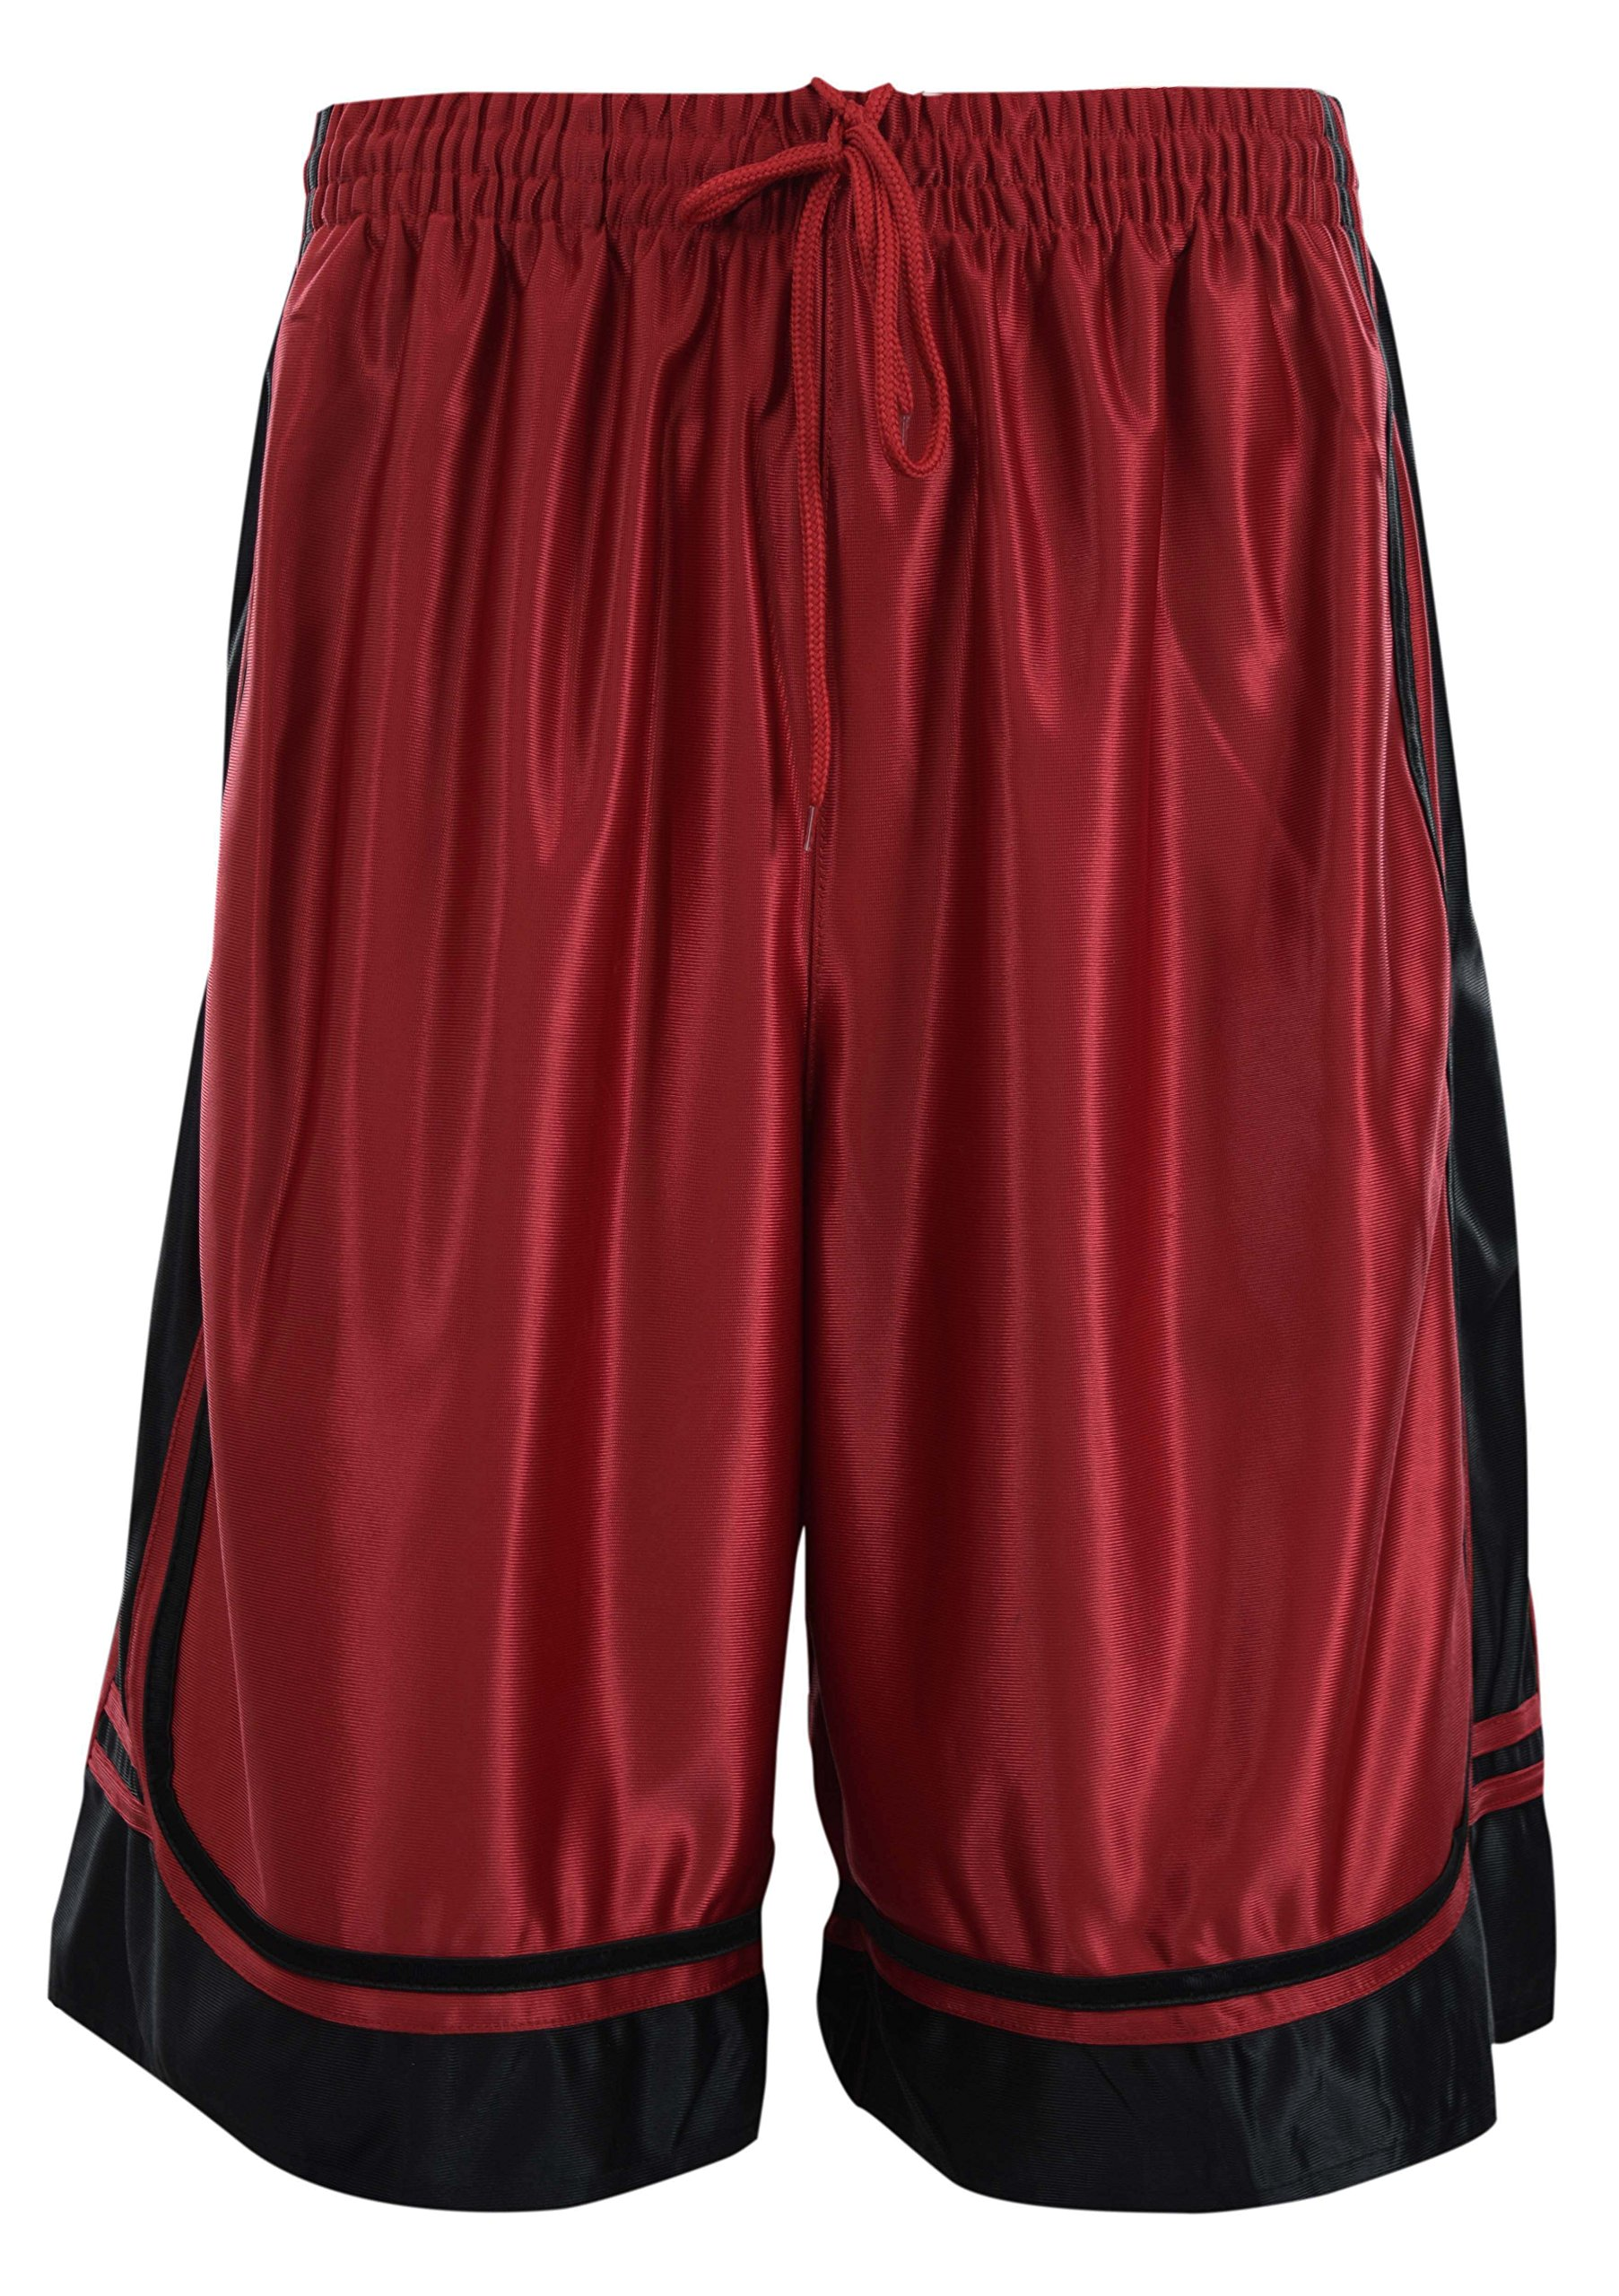 ChoiceApparel Mens Two Tone Training/Basketball Shorts with Pockets (S up to 4XL) (3XL, Red)